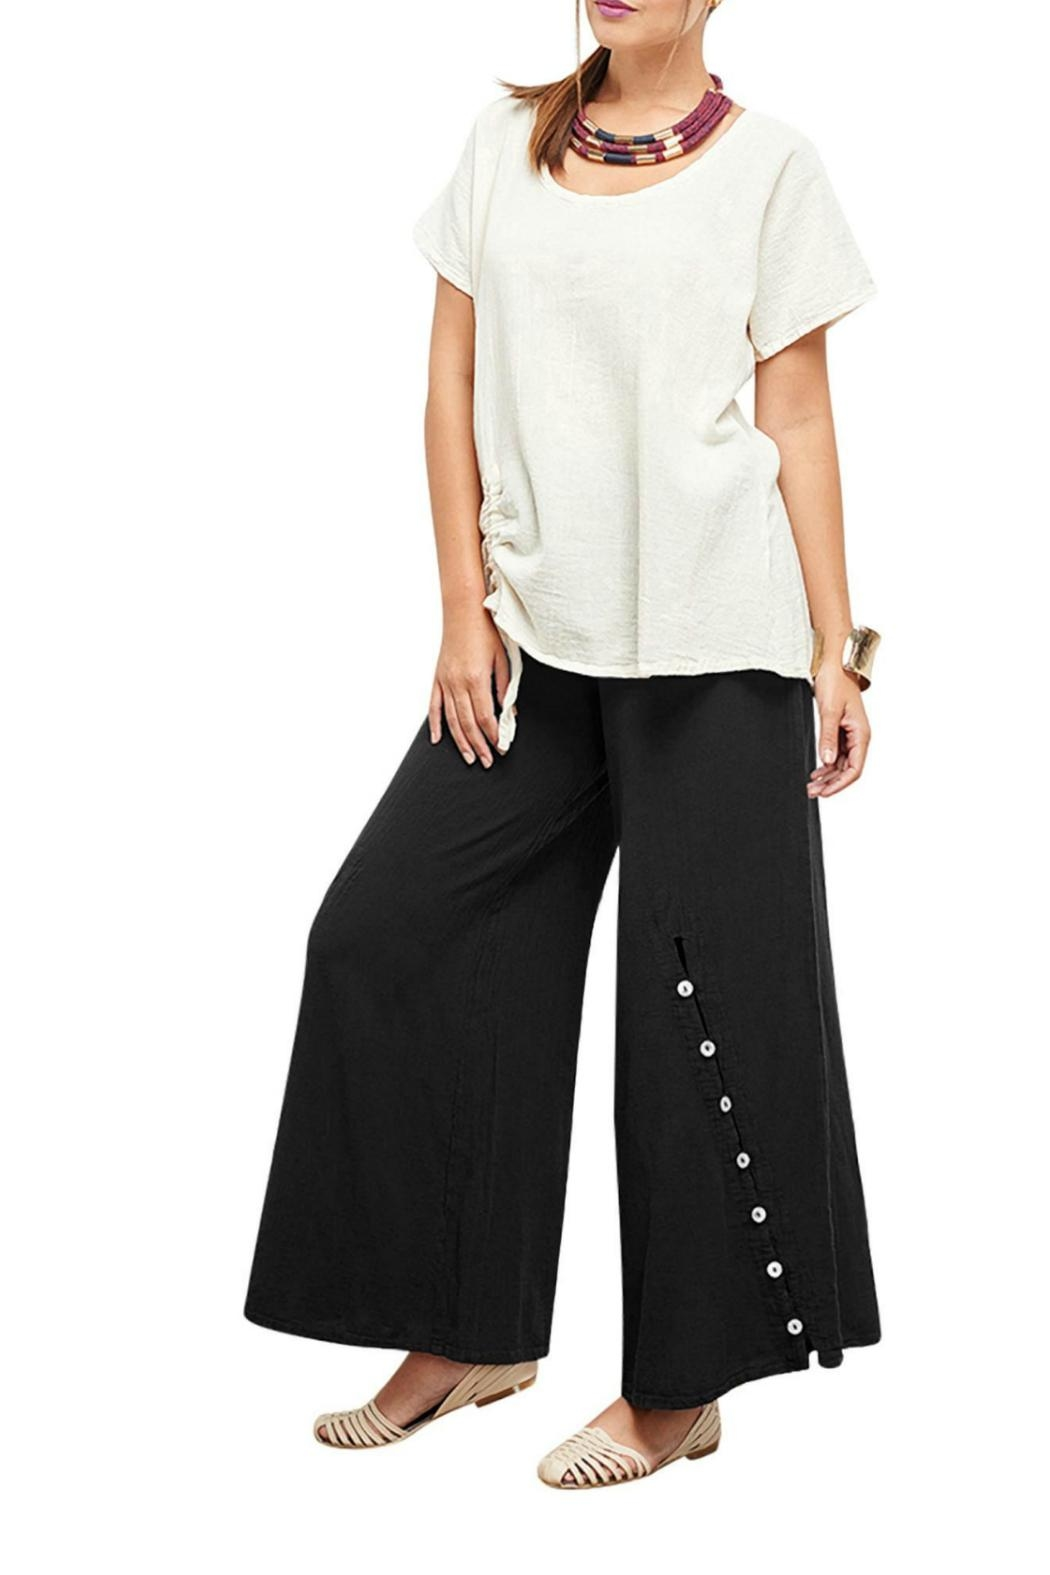 Oh My Gauze Black Dallas Pants - Front Cropped Image